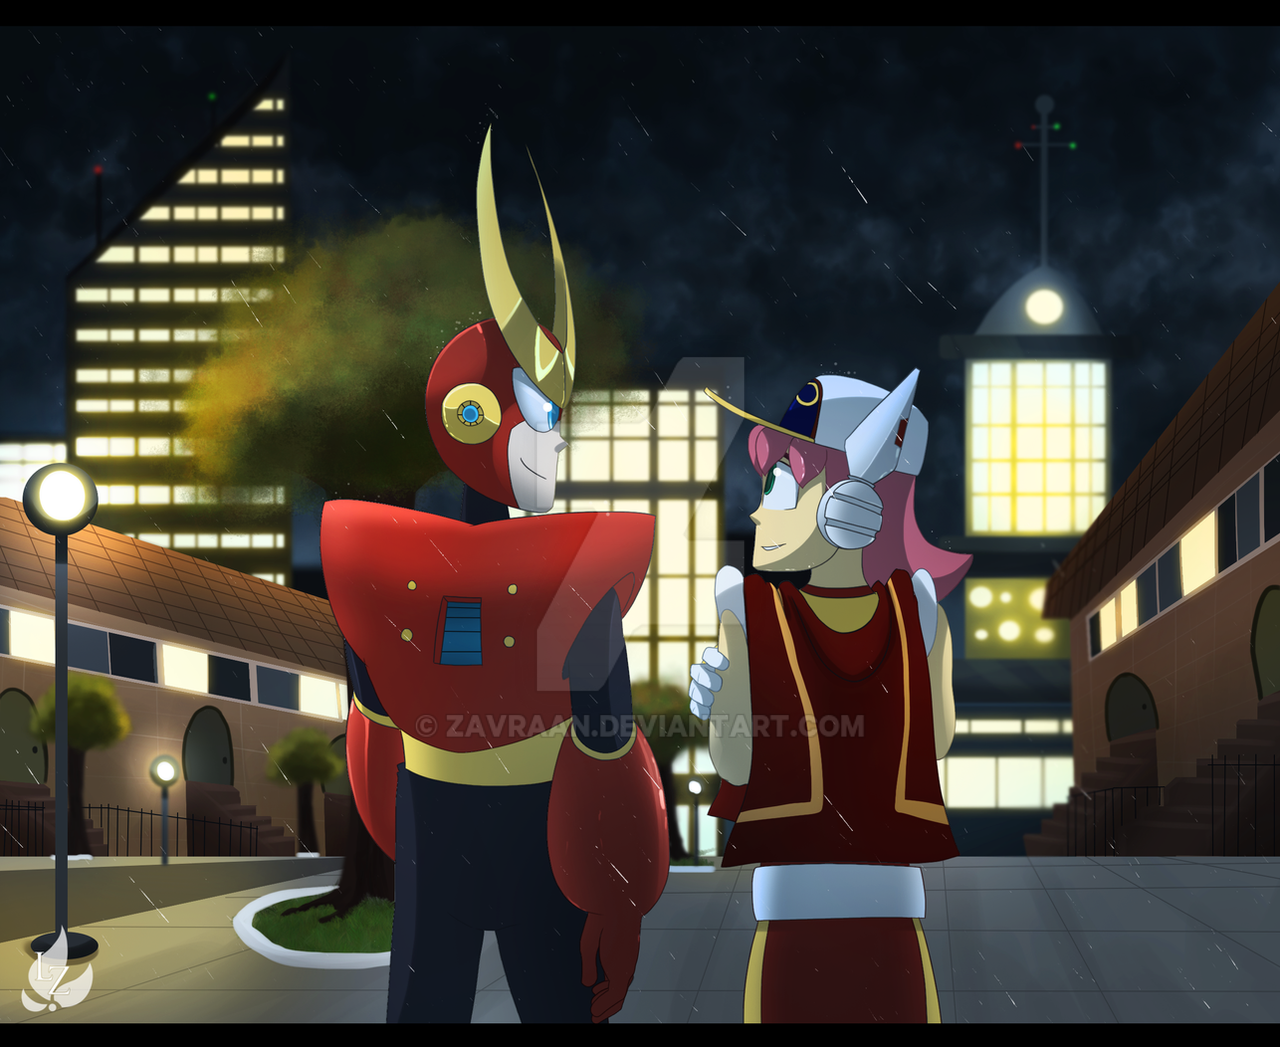 The Hero And The Reporter By Zavraan On Deviantart